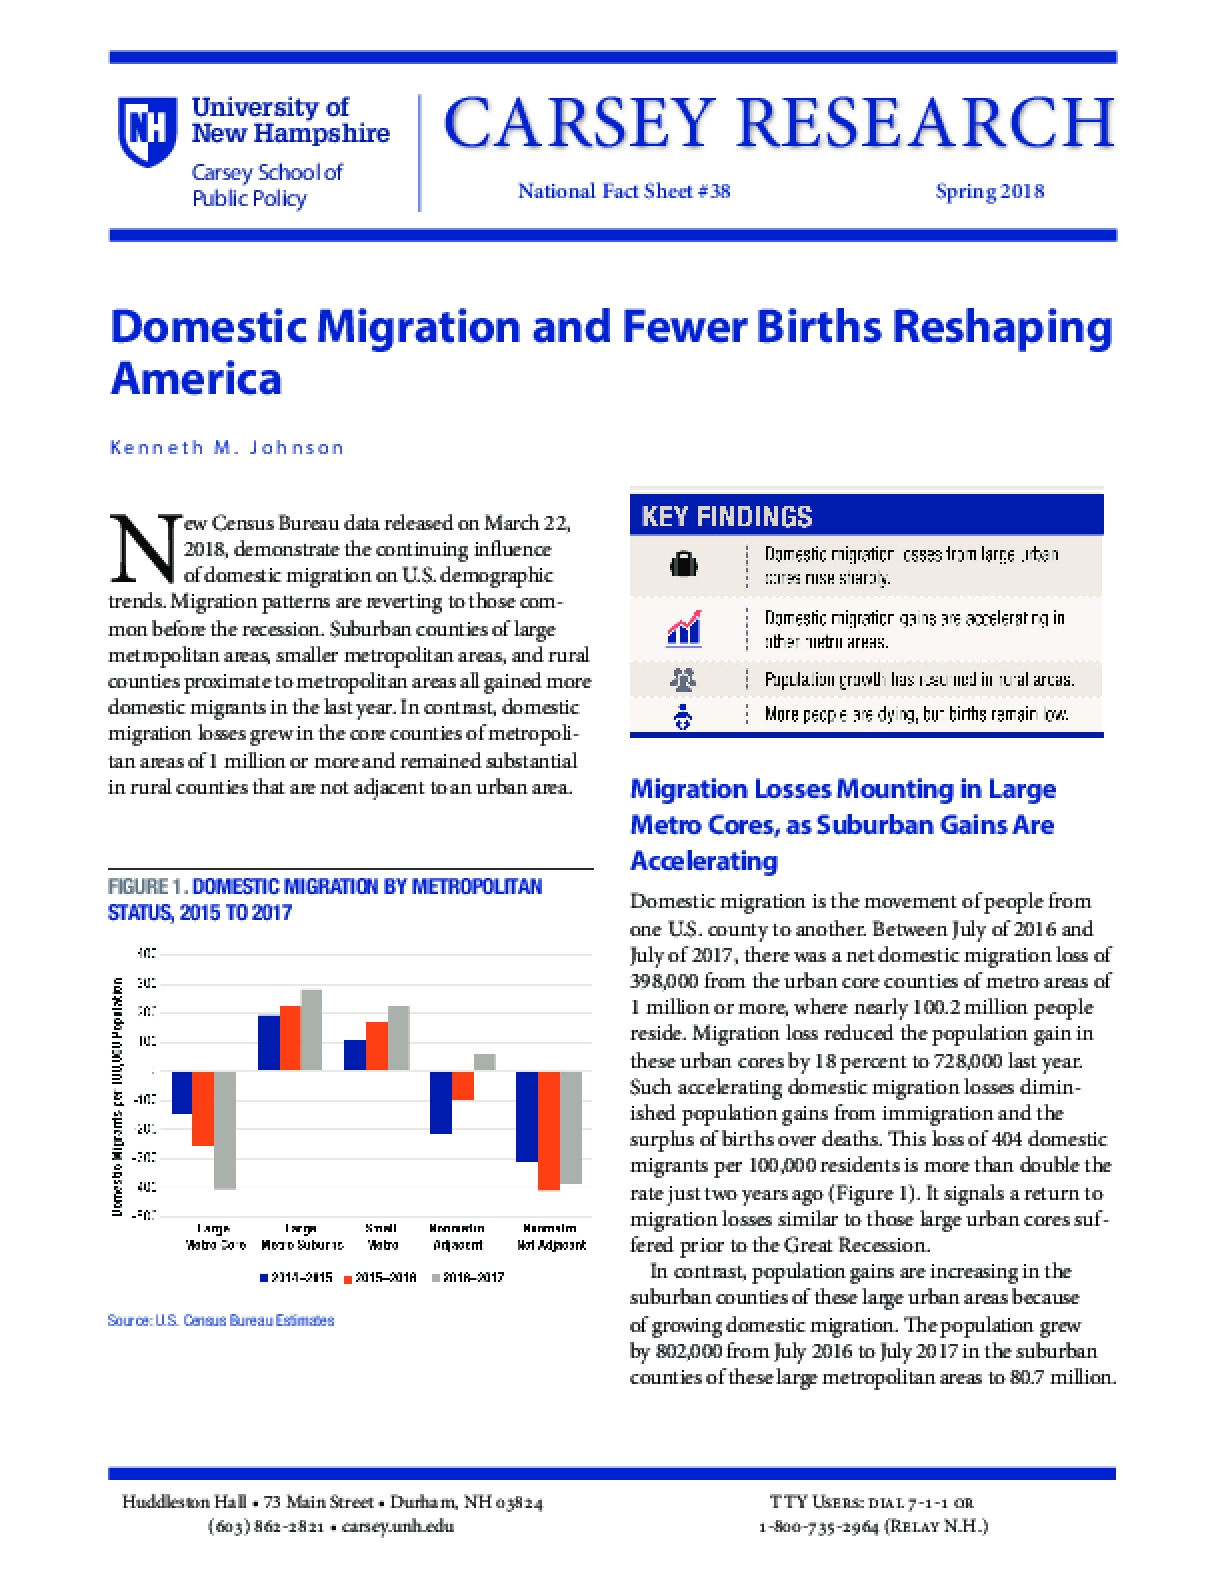 Domestic Migration and Fewer Births Reshaping America